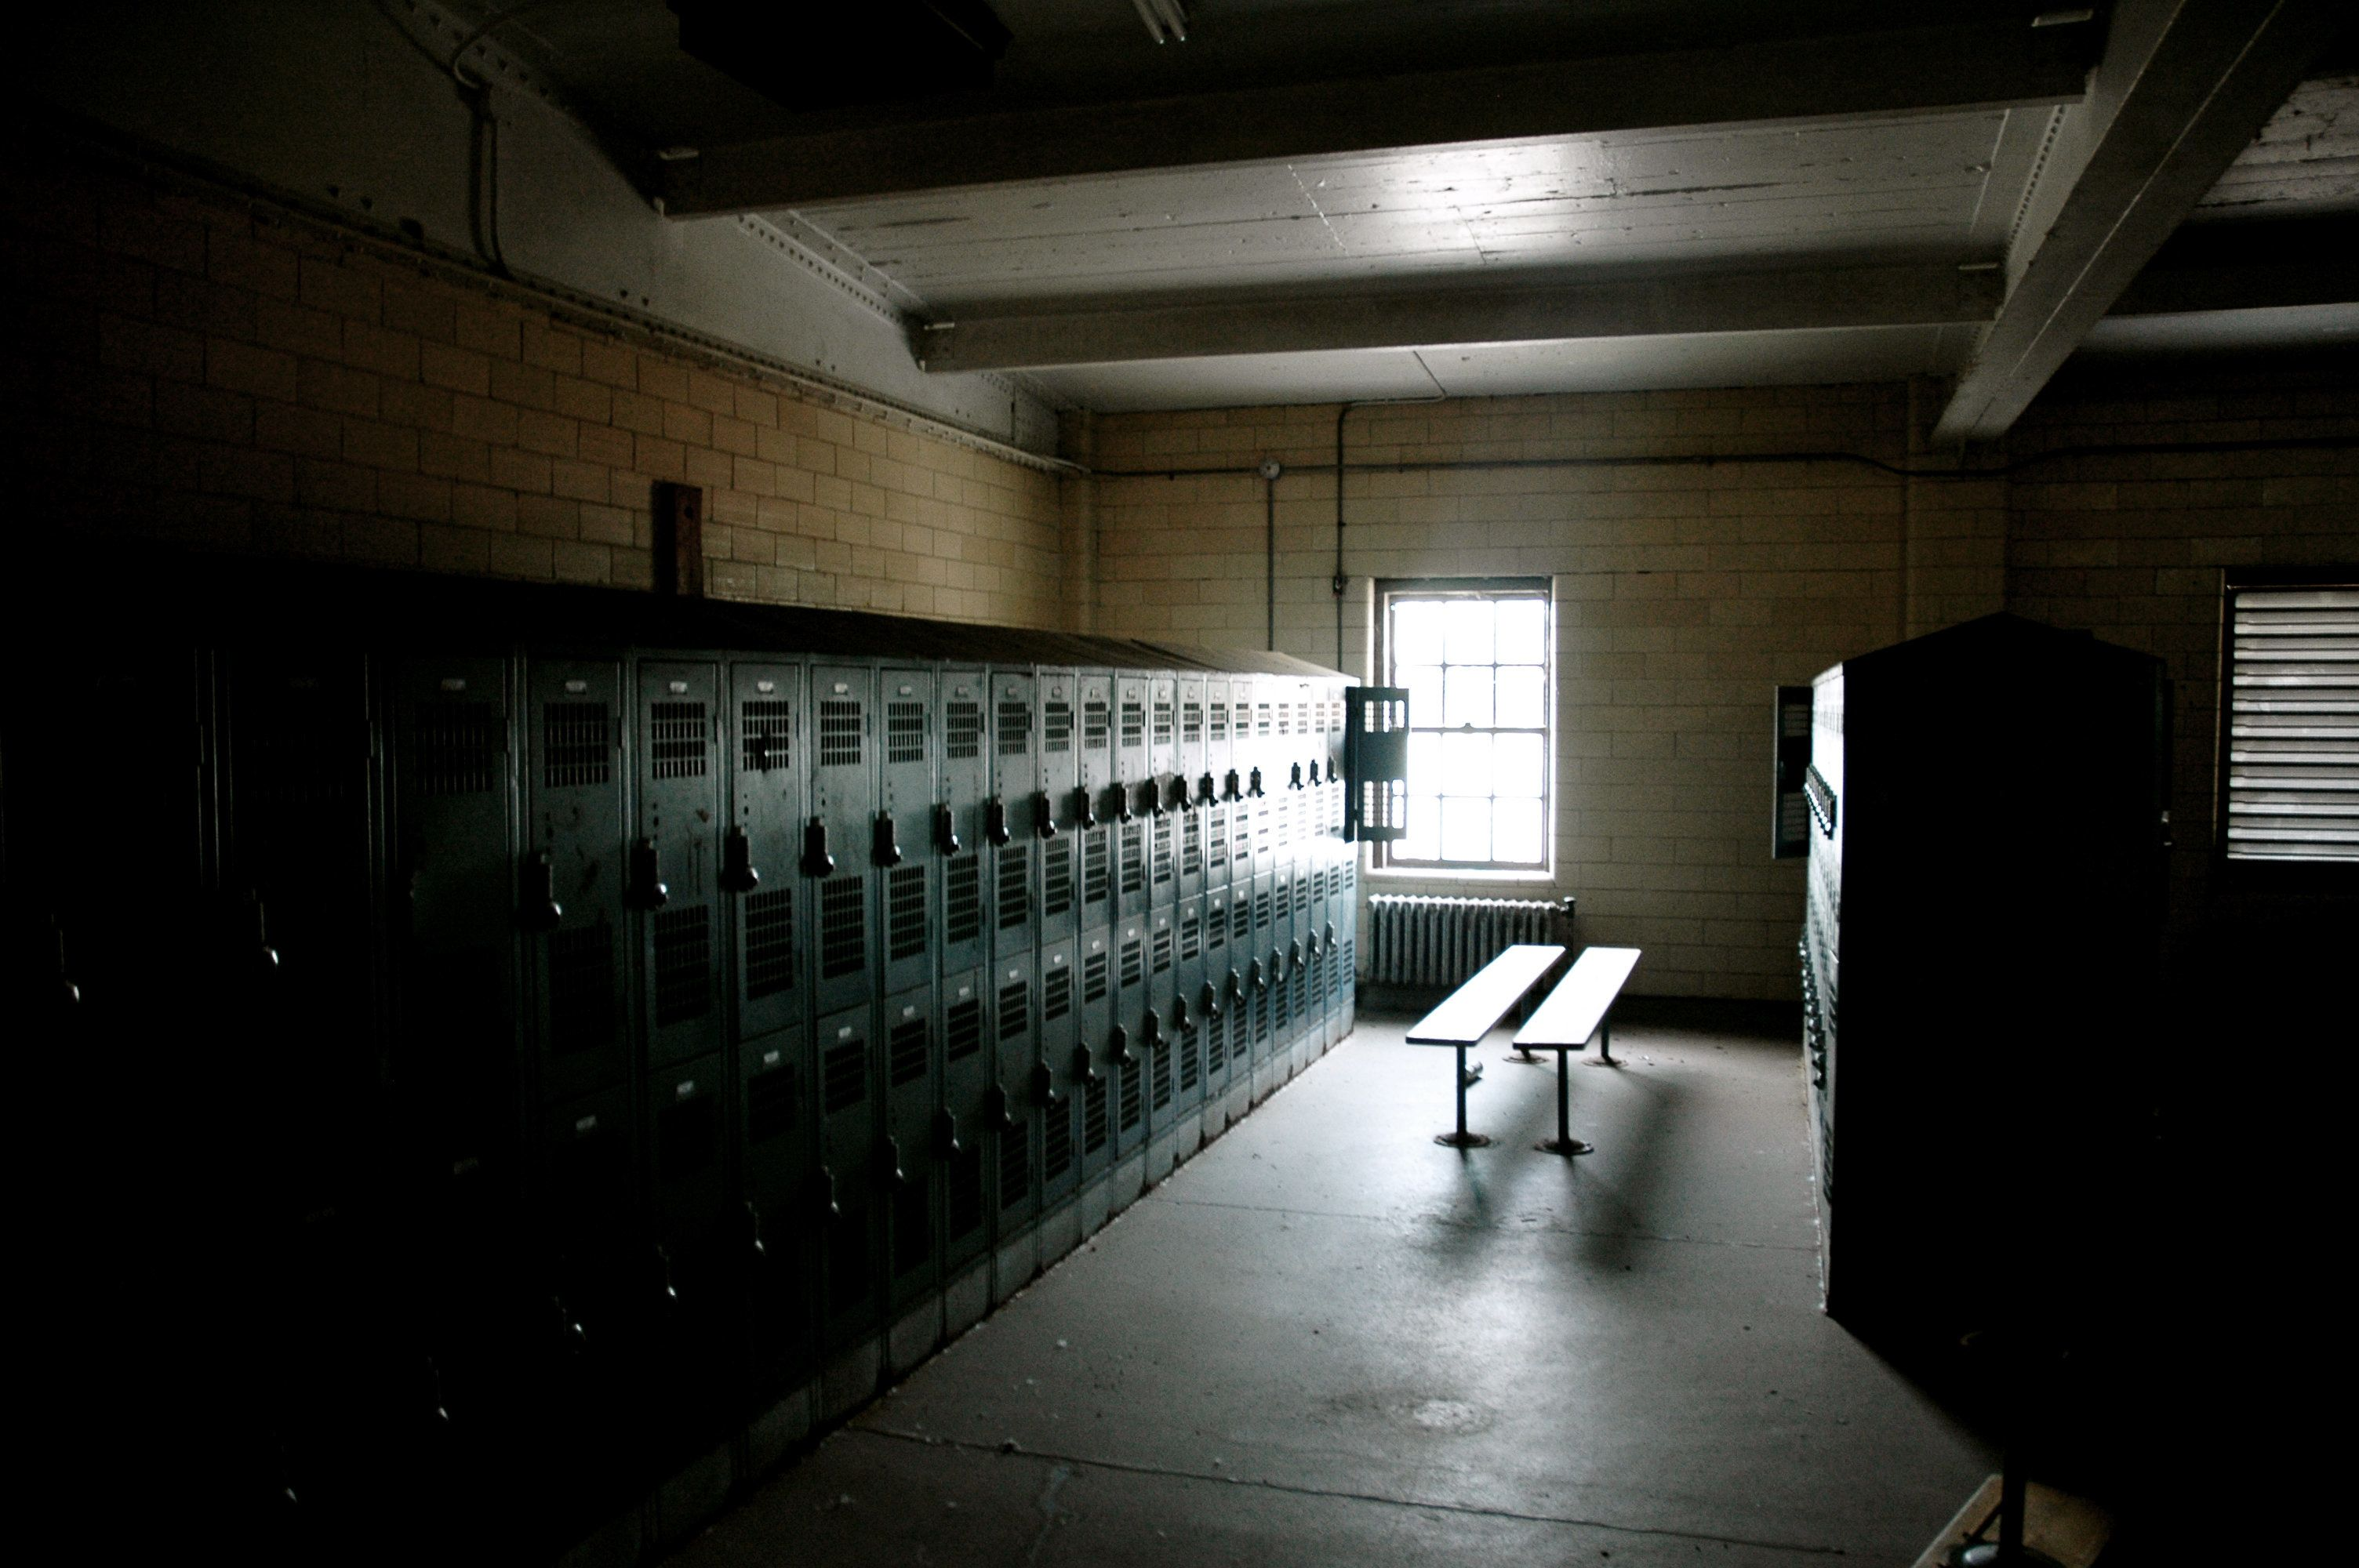 Locker room at an abandoned swimming pool.